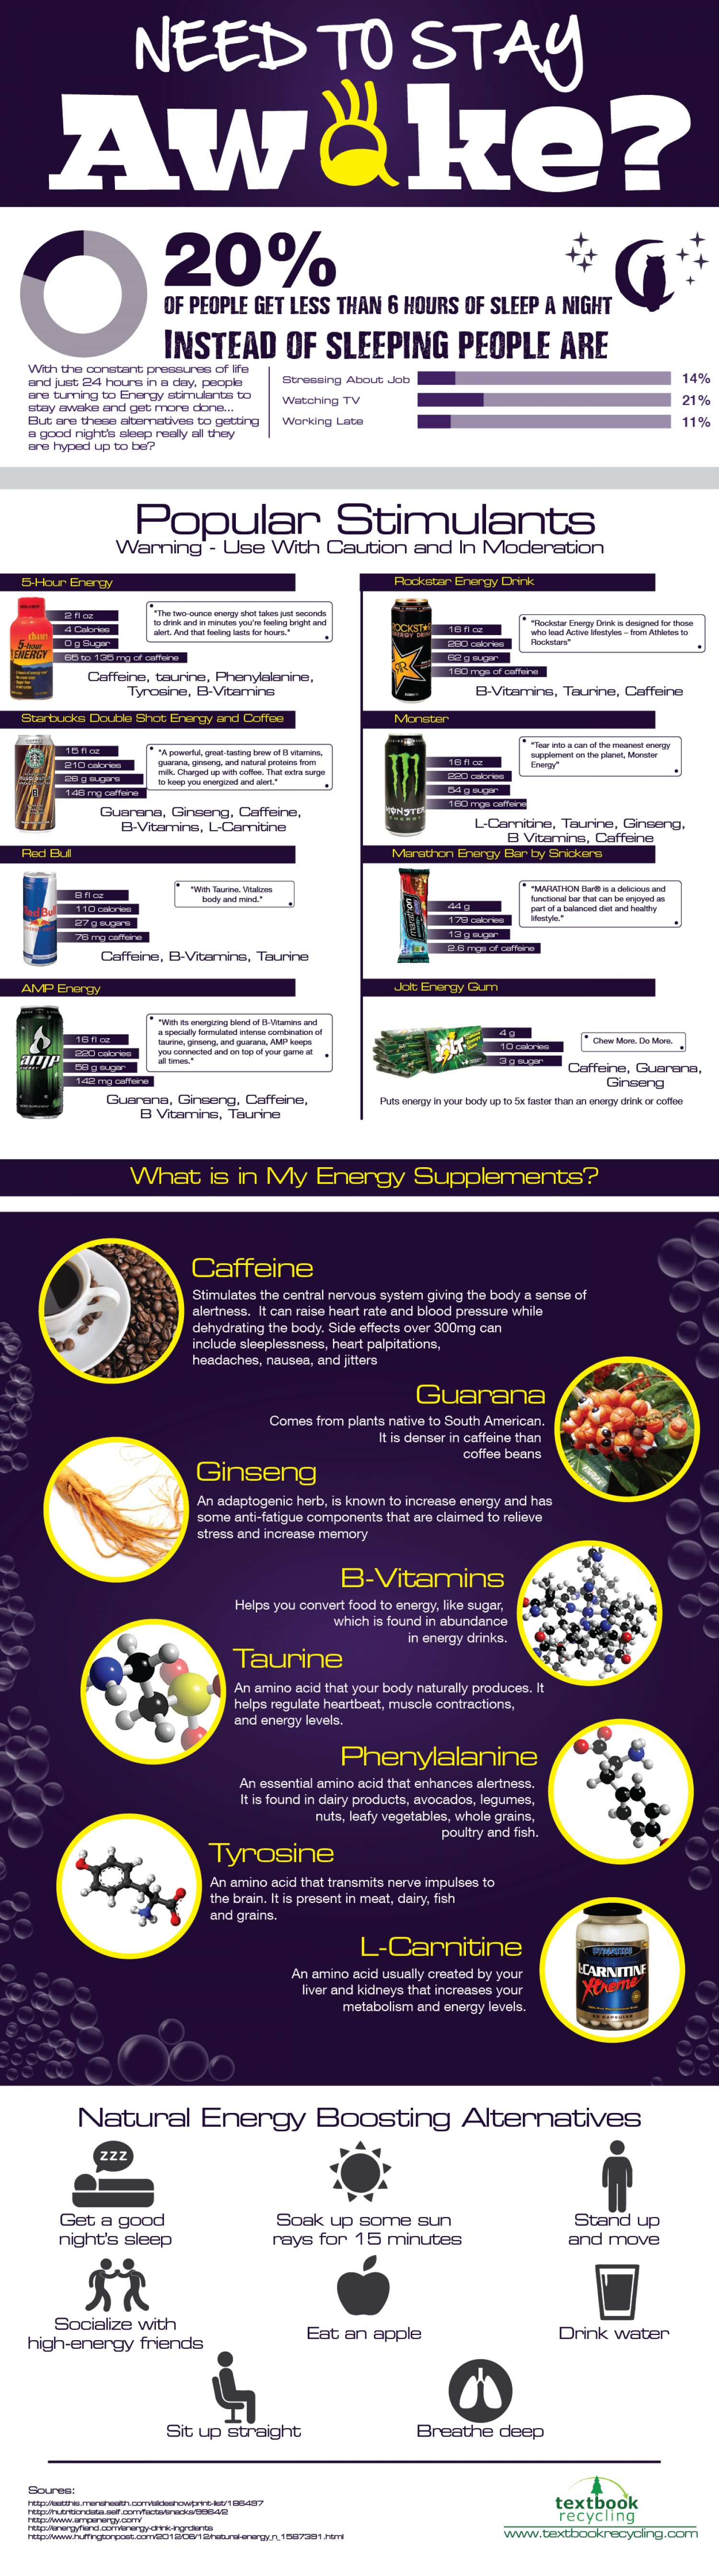 Need to Stay Awake? Infographic